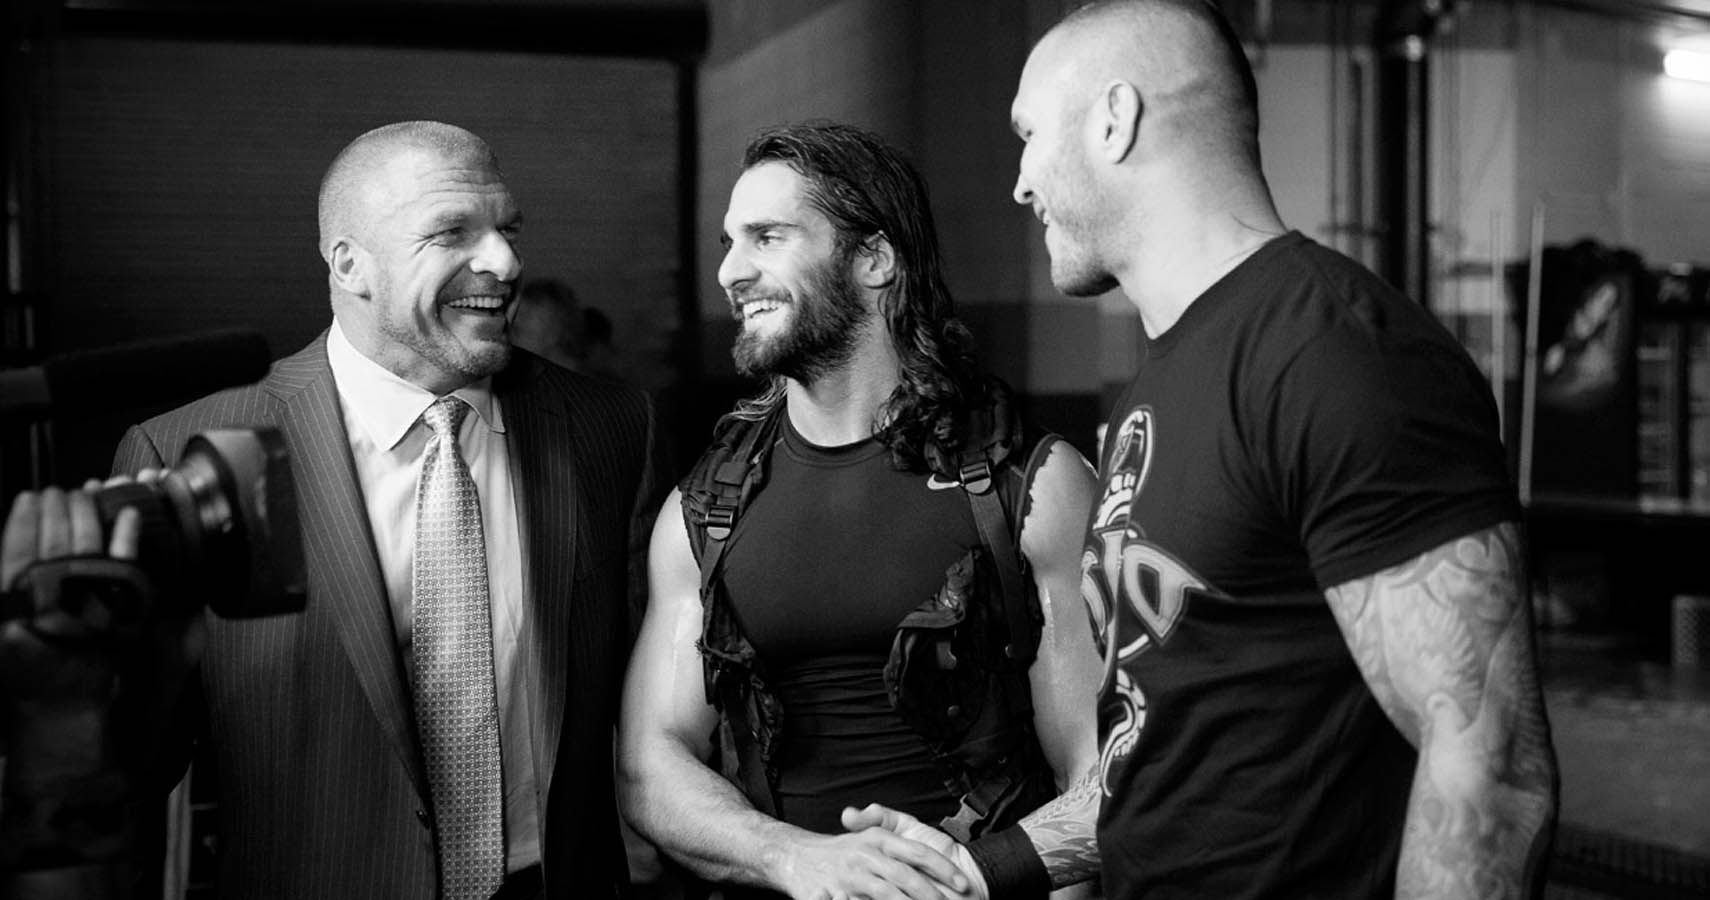 15 Things You Didn't Know About WWE Behind The Scenes